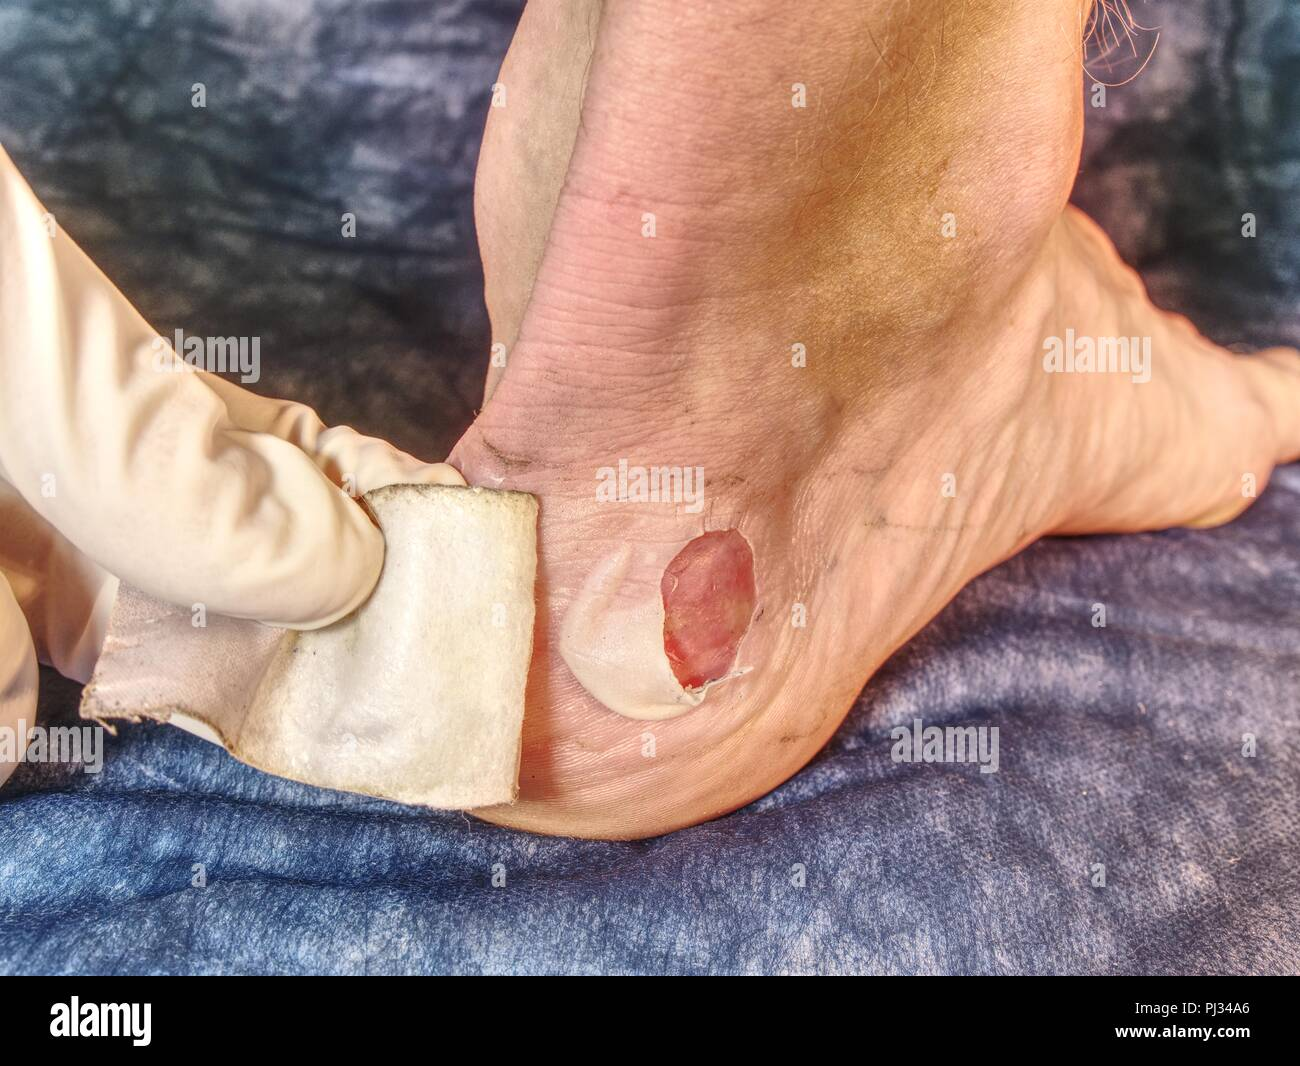 Detail of a fresh bloody blister on leg after sport accident.  Hot  and untouchable place on male skin. - Stock Image